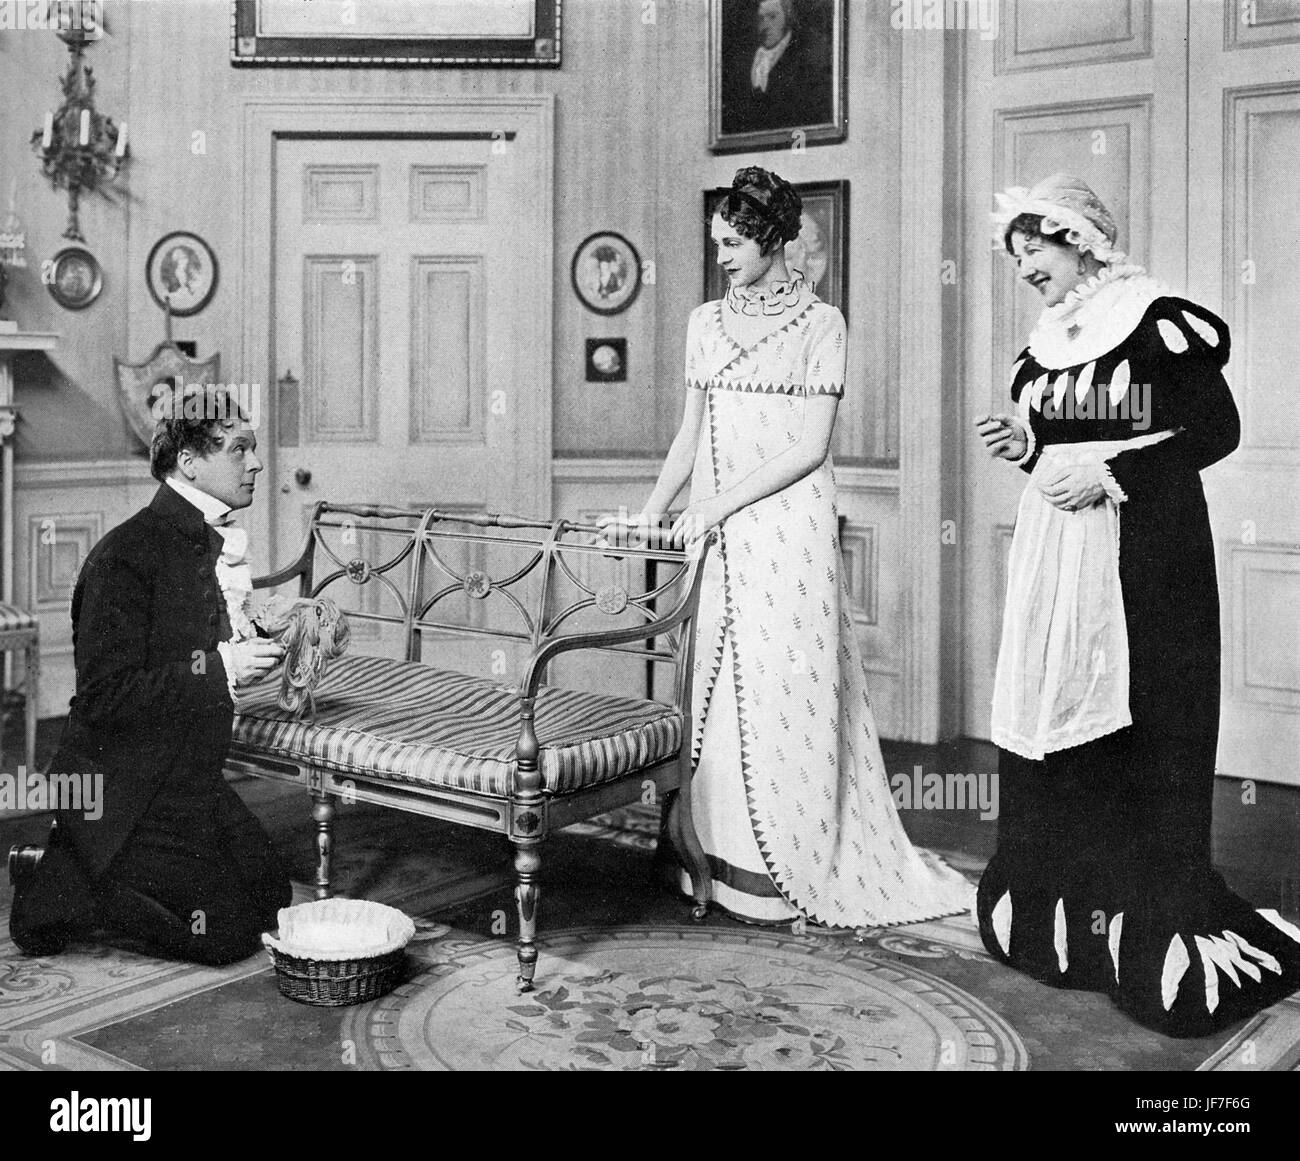 'Pride and Prejudice': Mr Collins (Lyonel Watts) picks up Mrs Bennet's (Barbara Everest) wool and tries - Stock Image